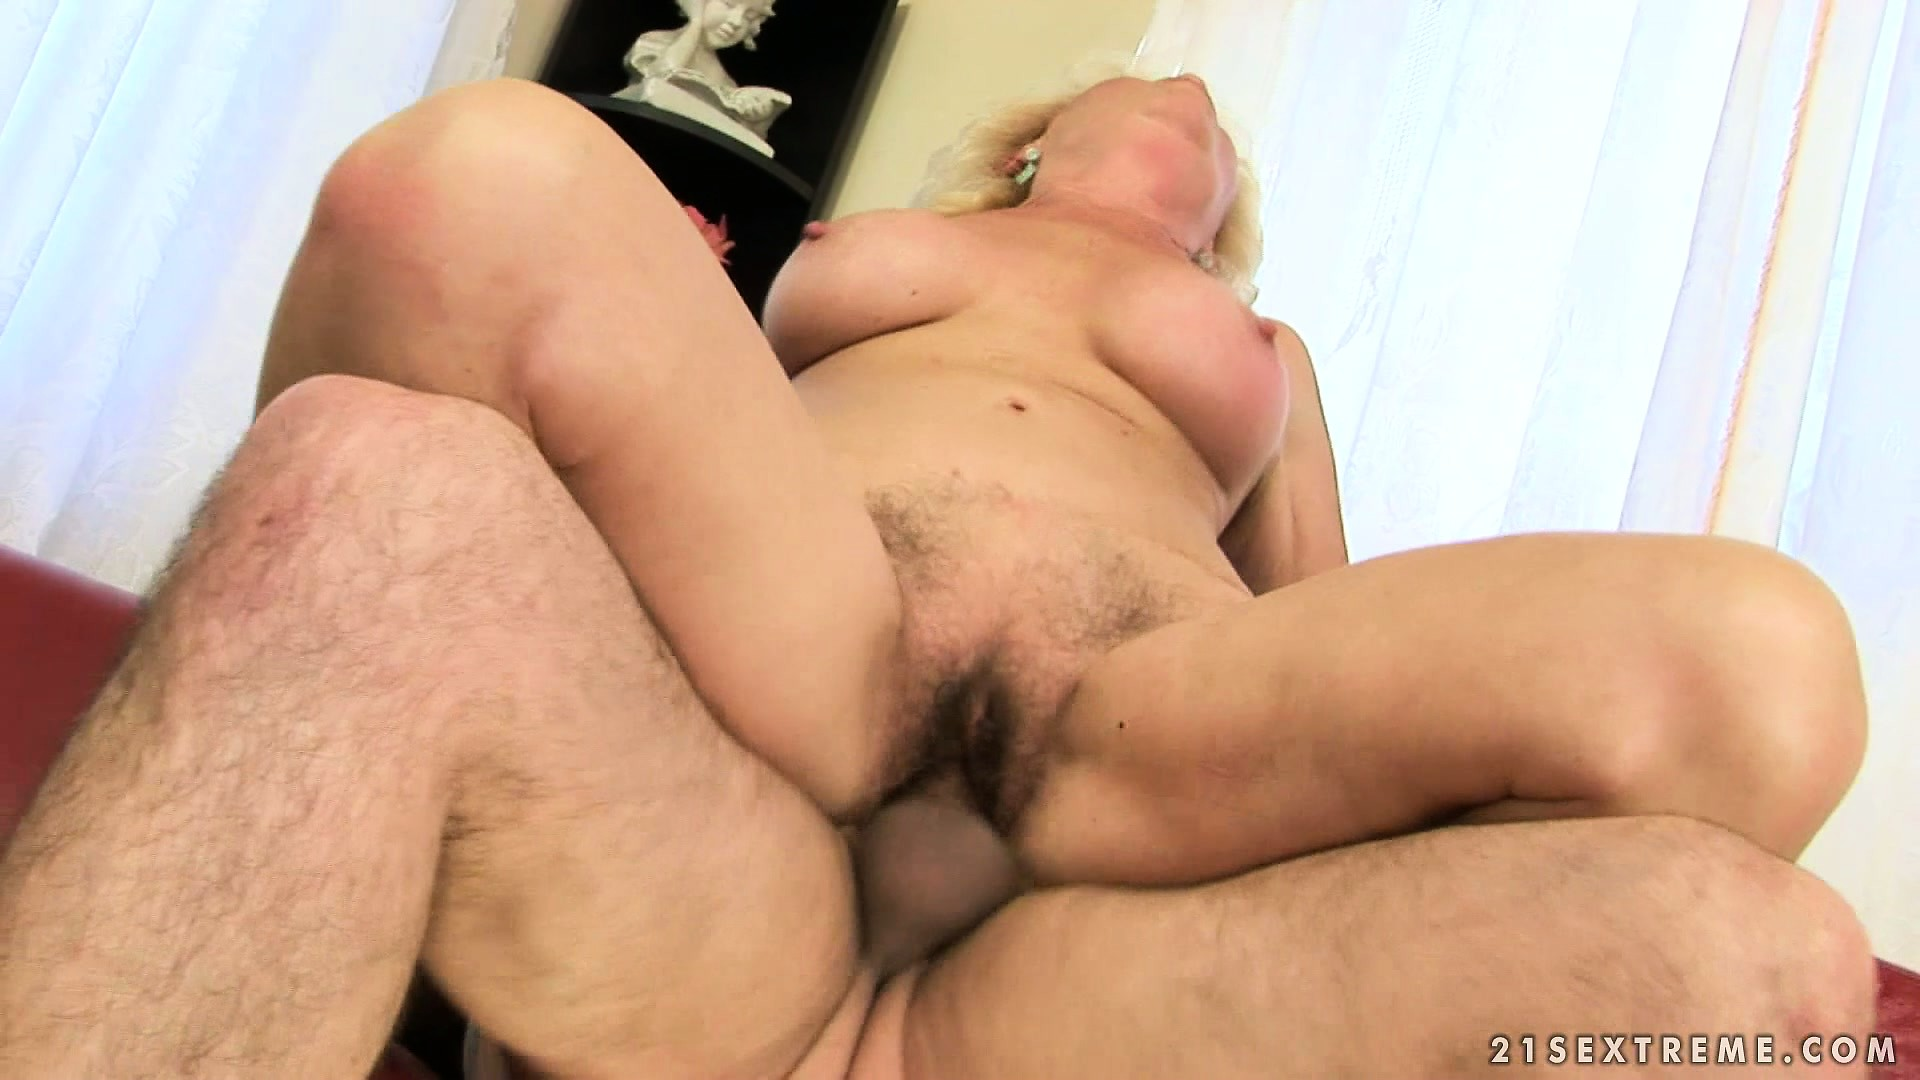 Porn Tube of The Blonde Bounces On That Dick With Excitement Driving Her Hairy Cunt To Climax